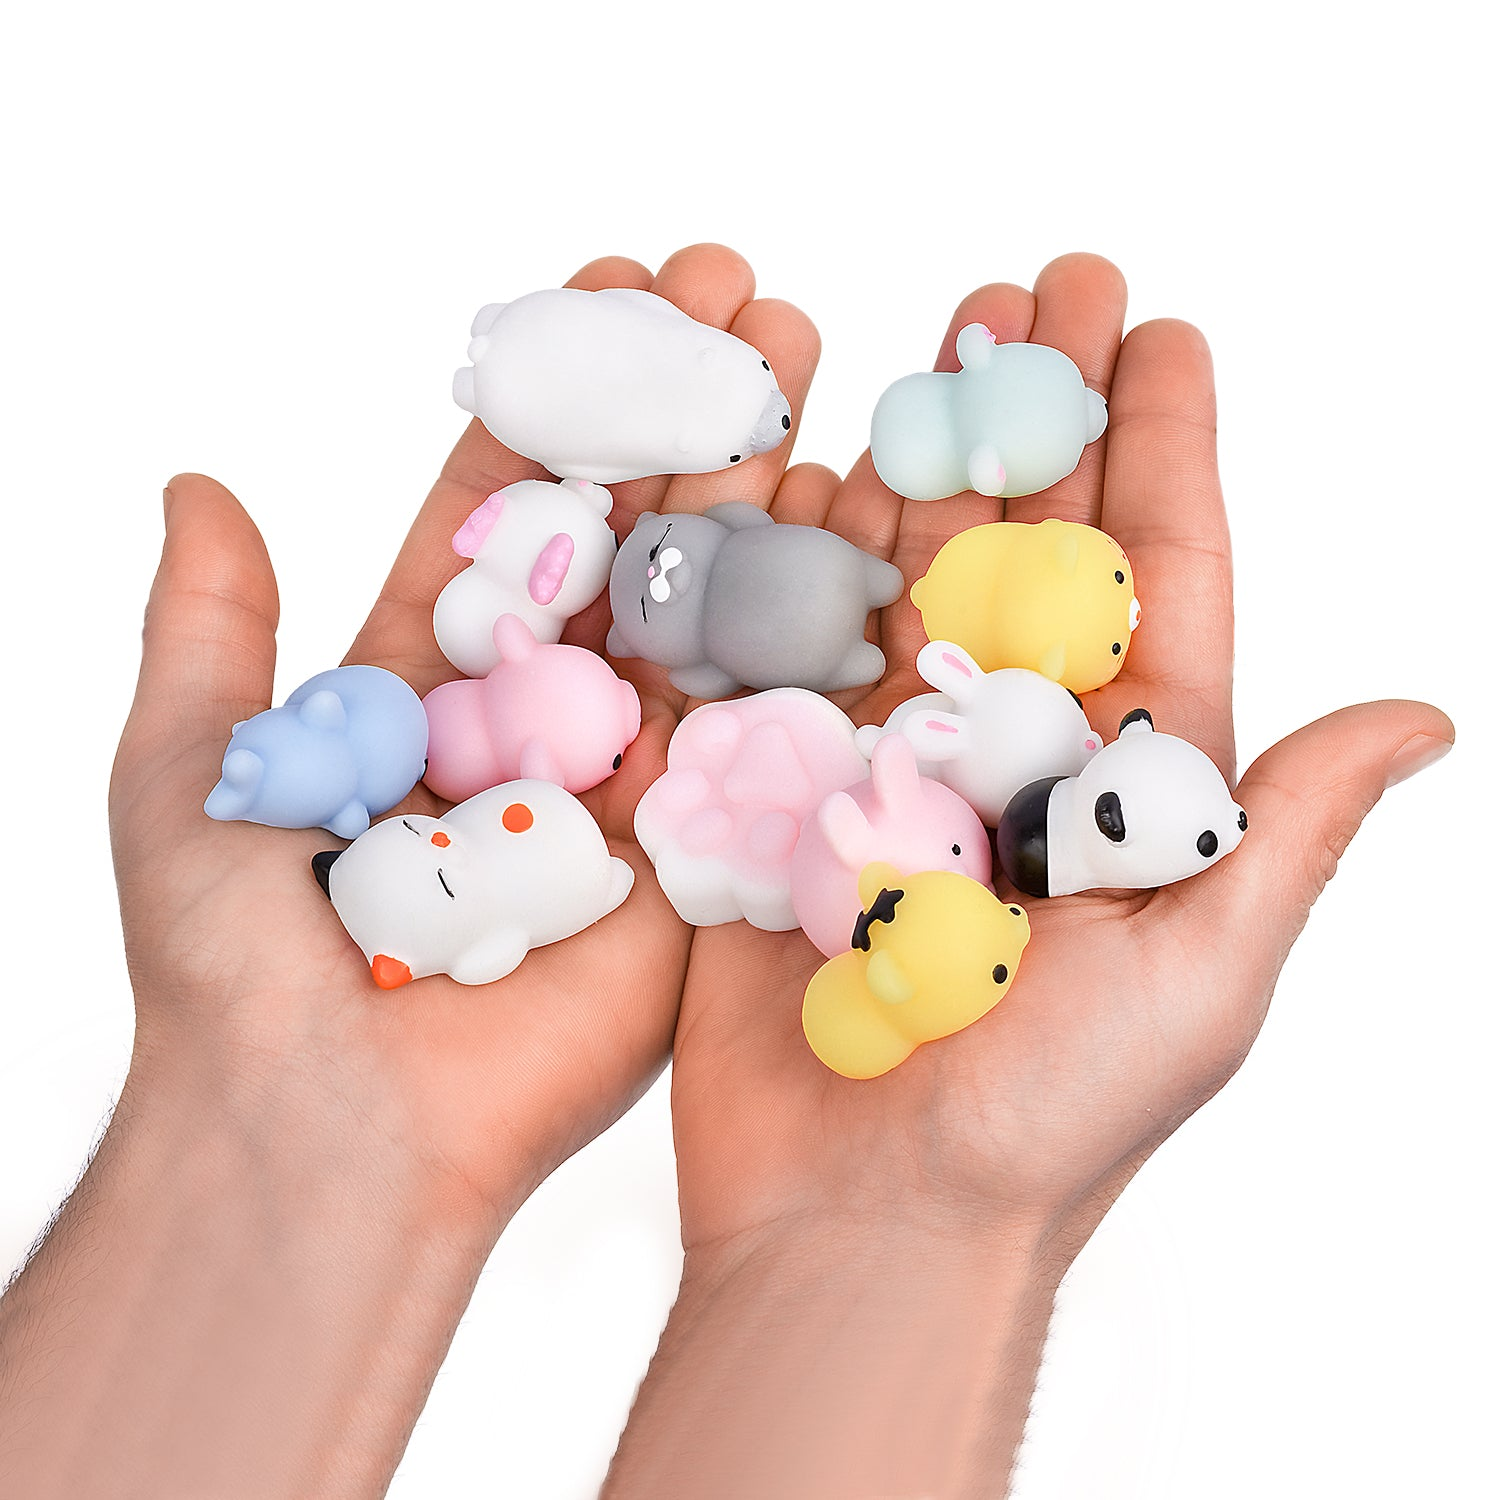 Adorable Mini Squishies Gift Set for Kids & Adults | Soft & Super-Cute Animal Squishy Toys | Colorful Kawaii Squishies for Stress & Anxiety Relief | Improve Focus & Productivity | 20 Pcs